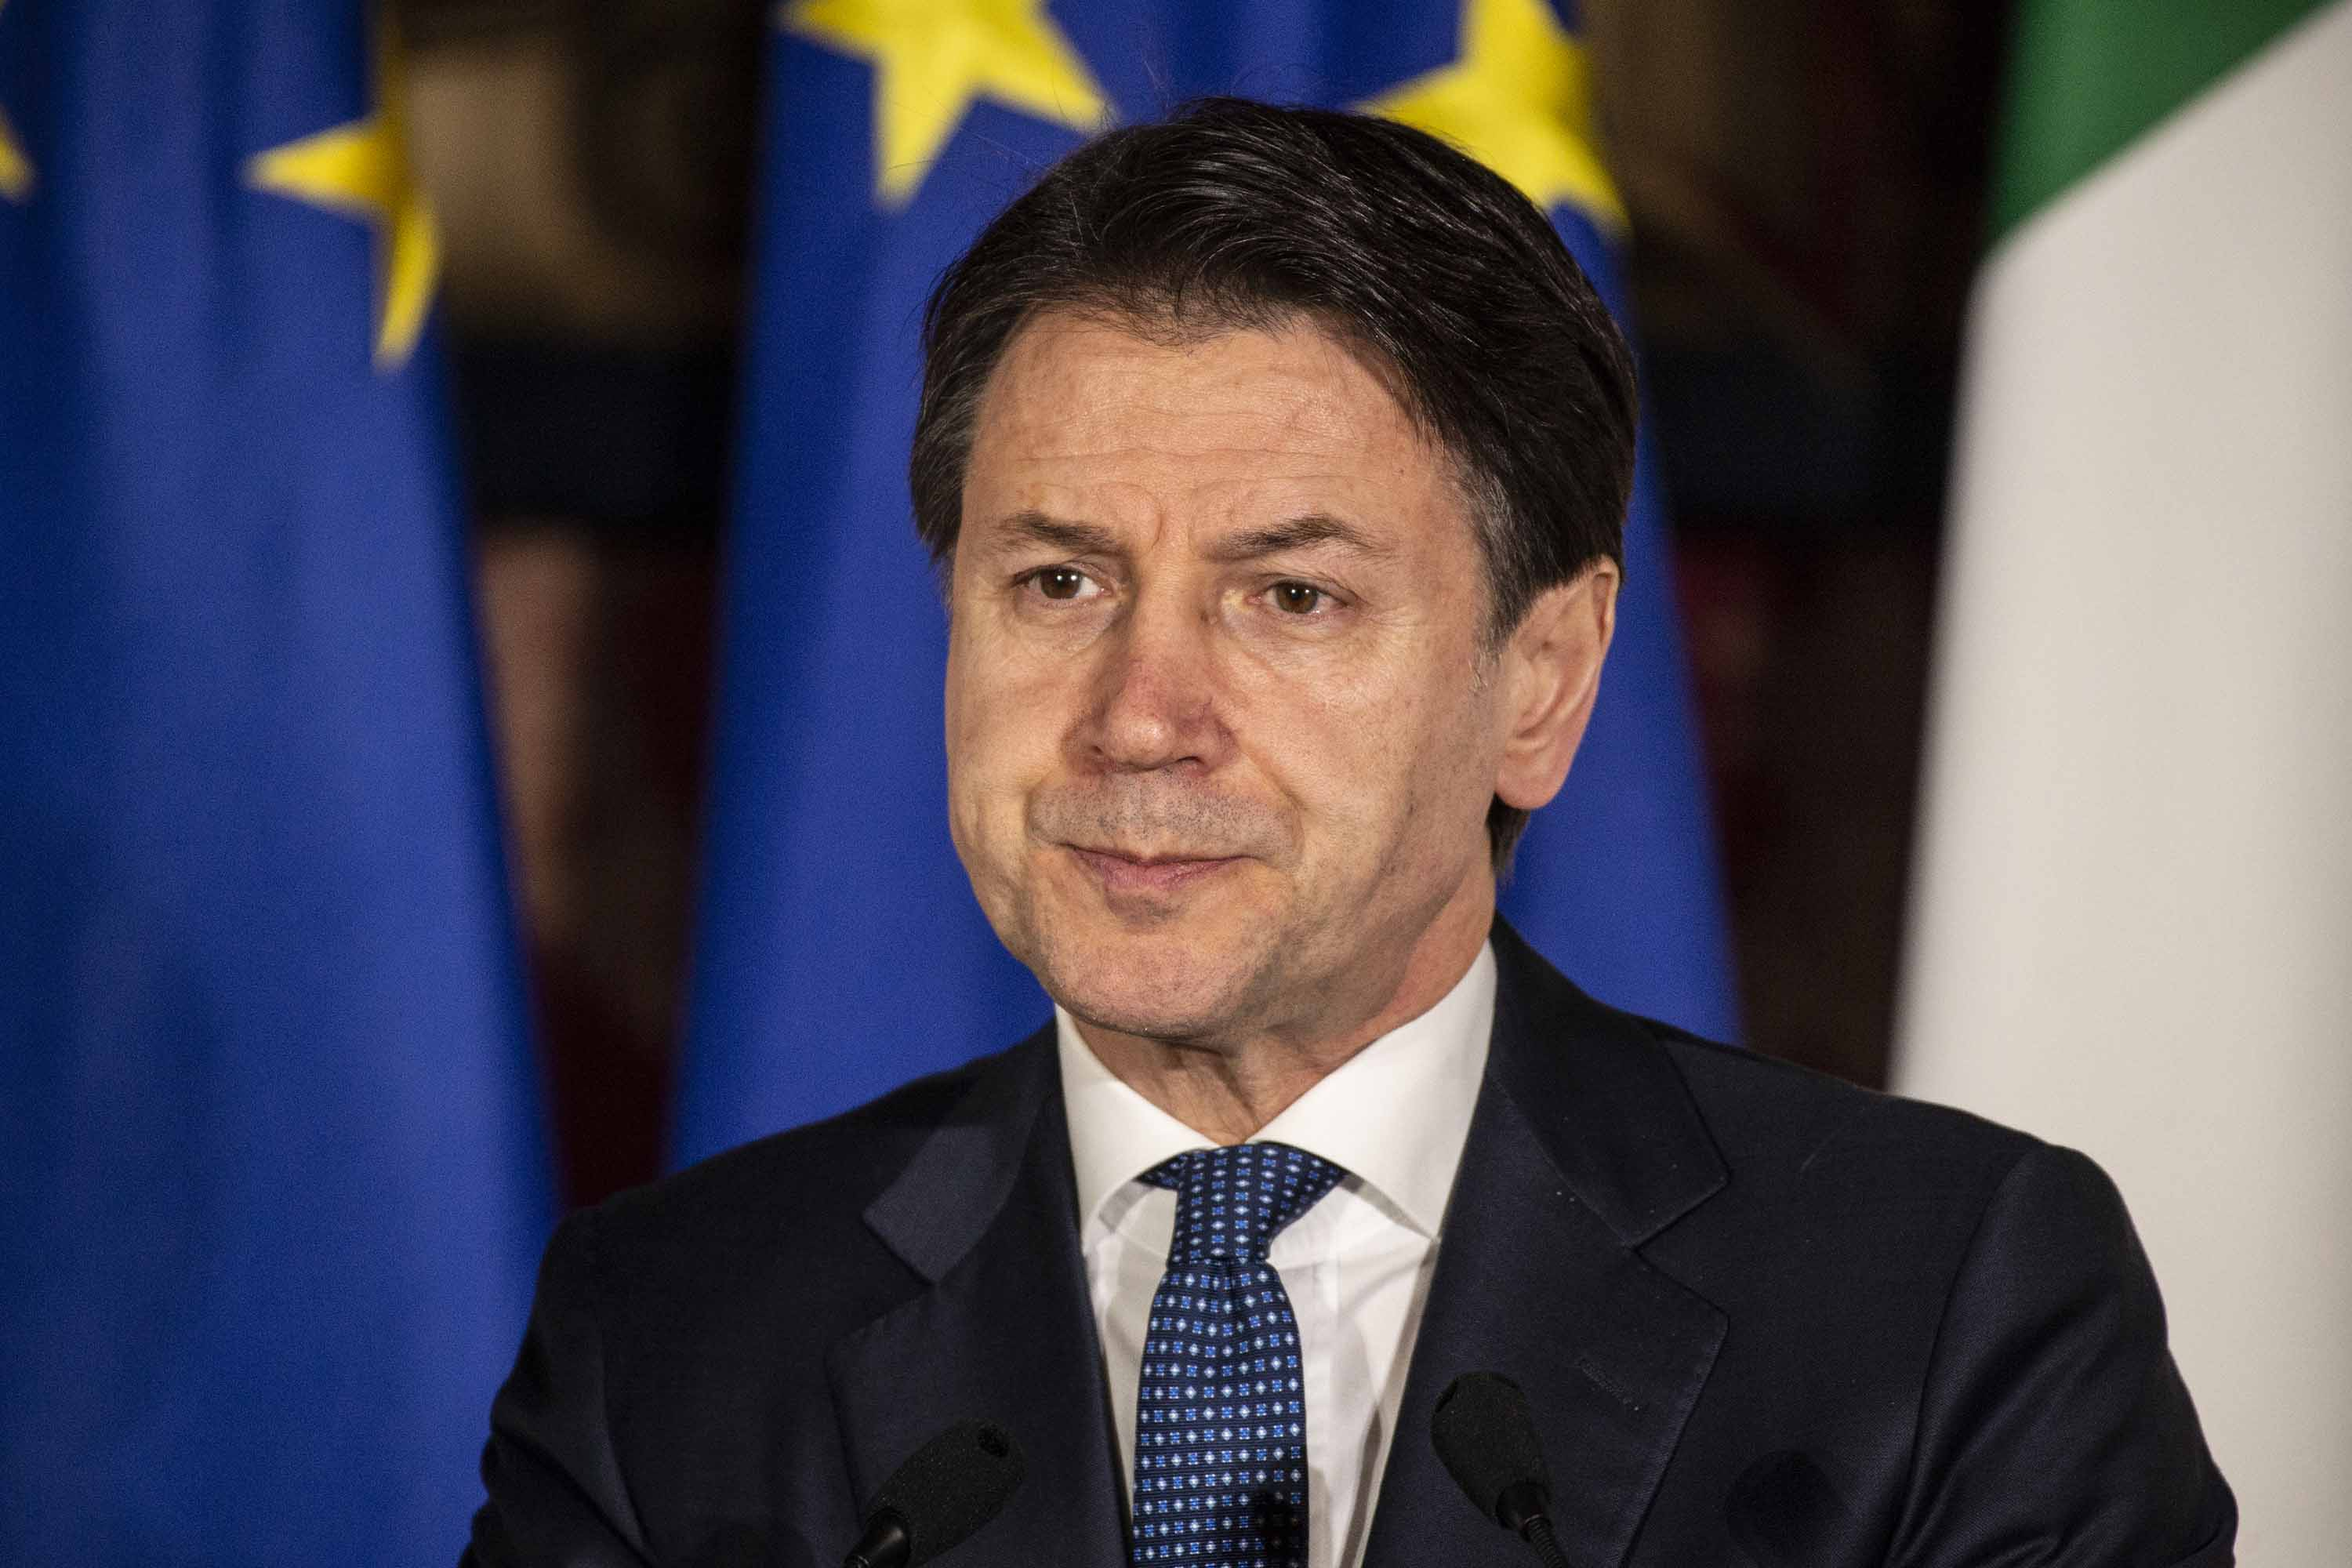 Italian Prime Minister Giuseppe Conte appears at a press conference on February 27 in Naples, Italy.